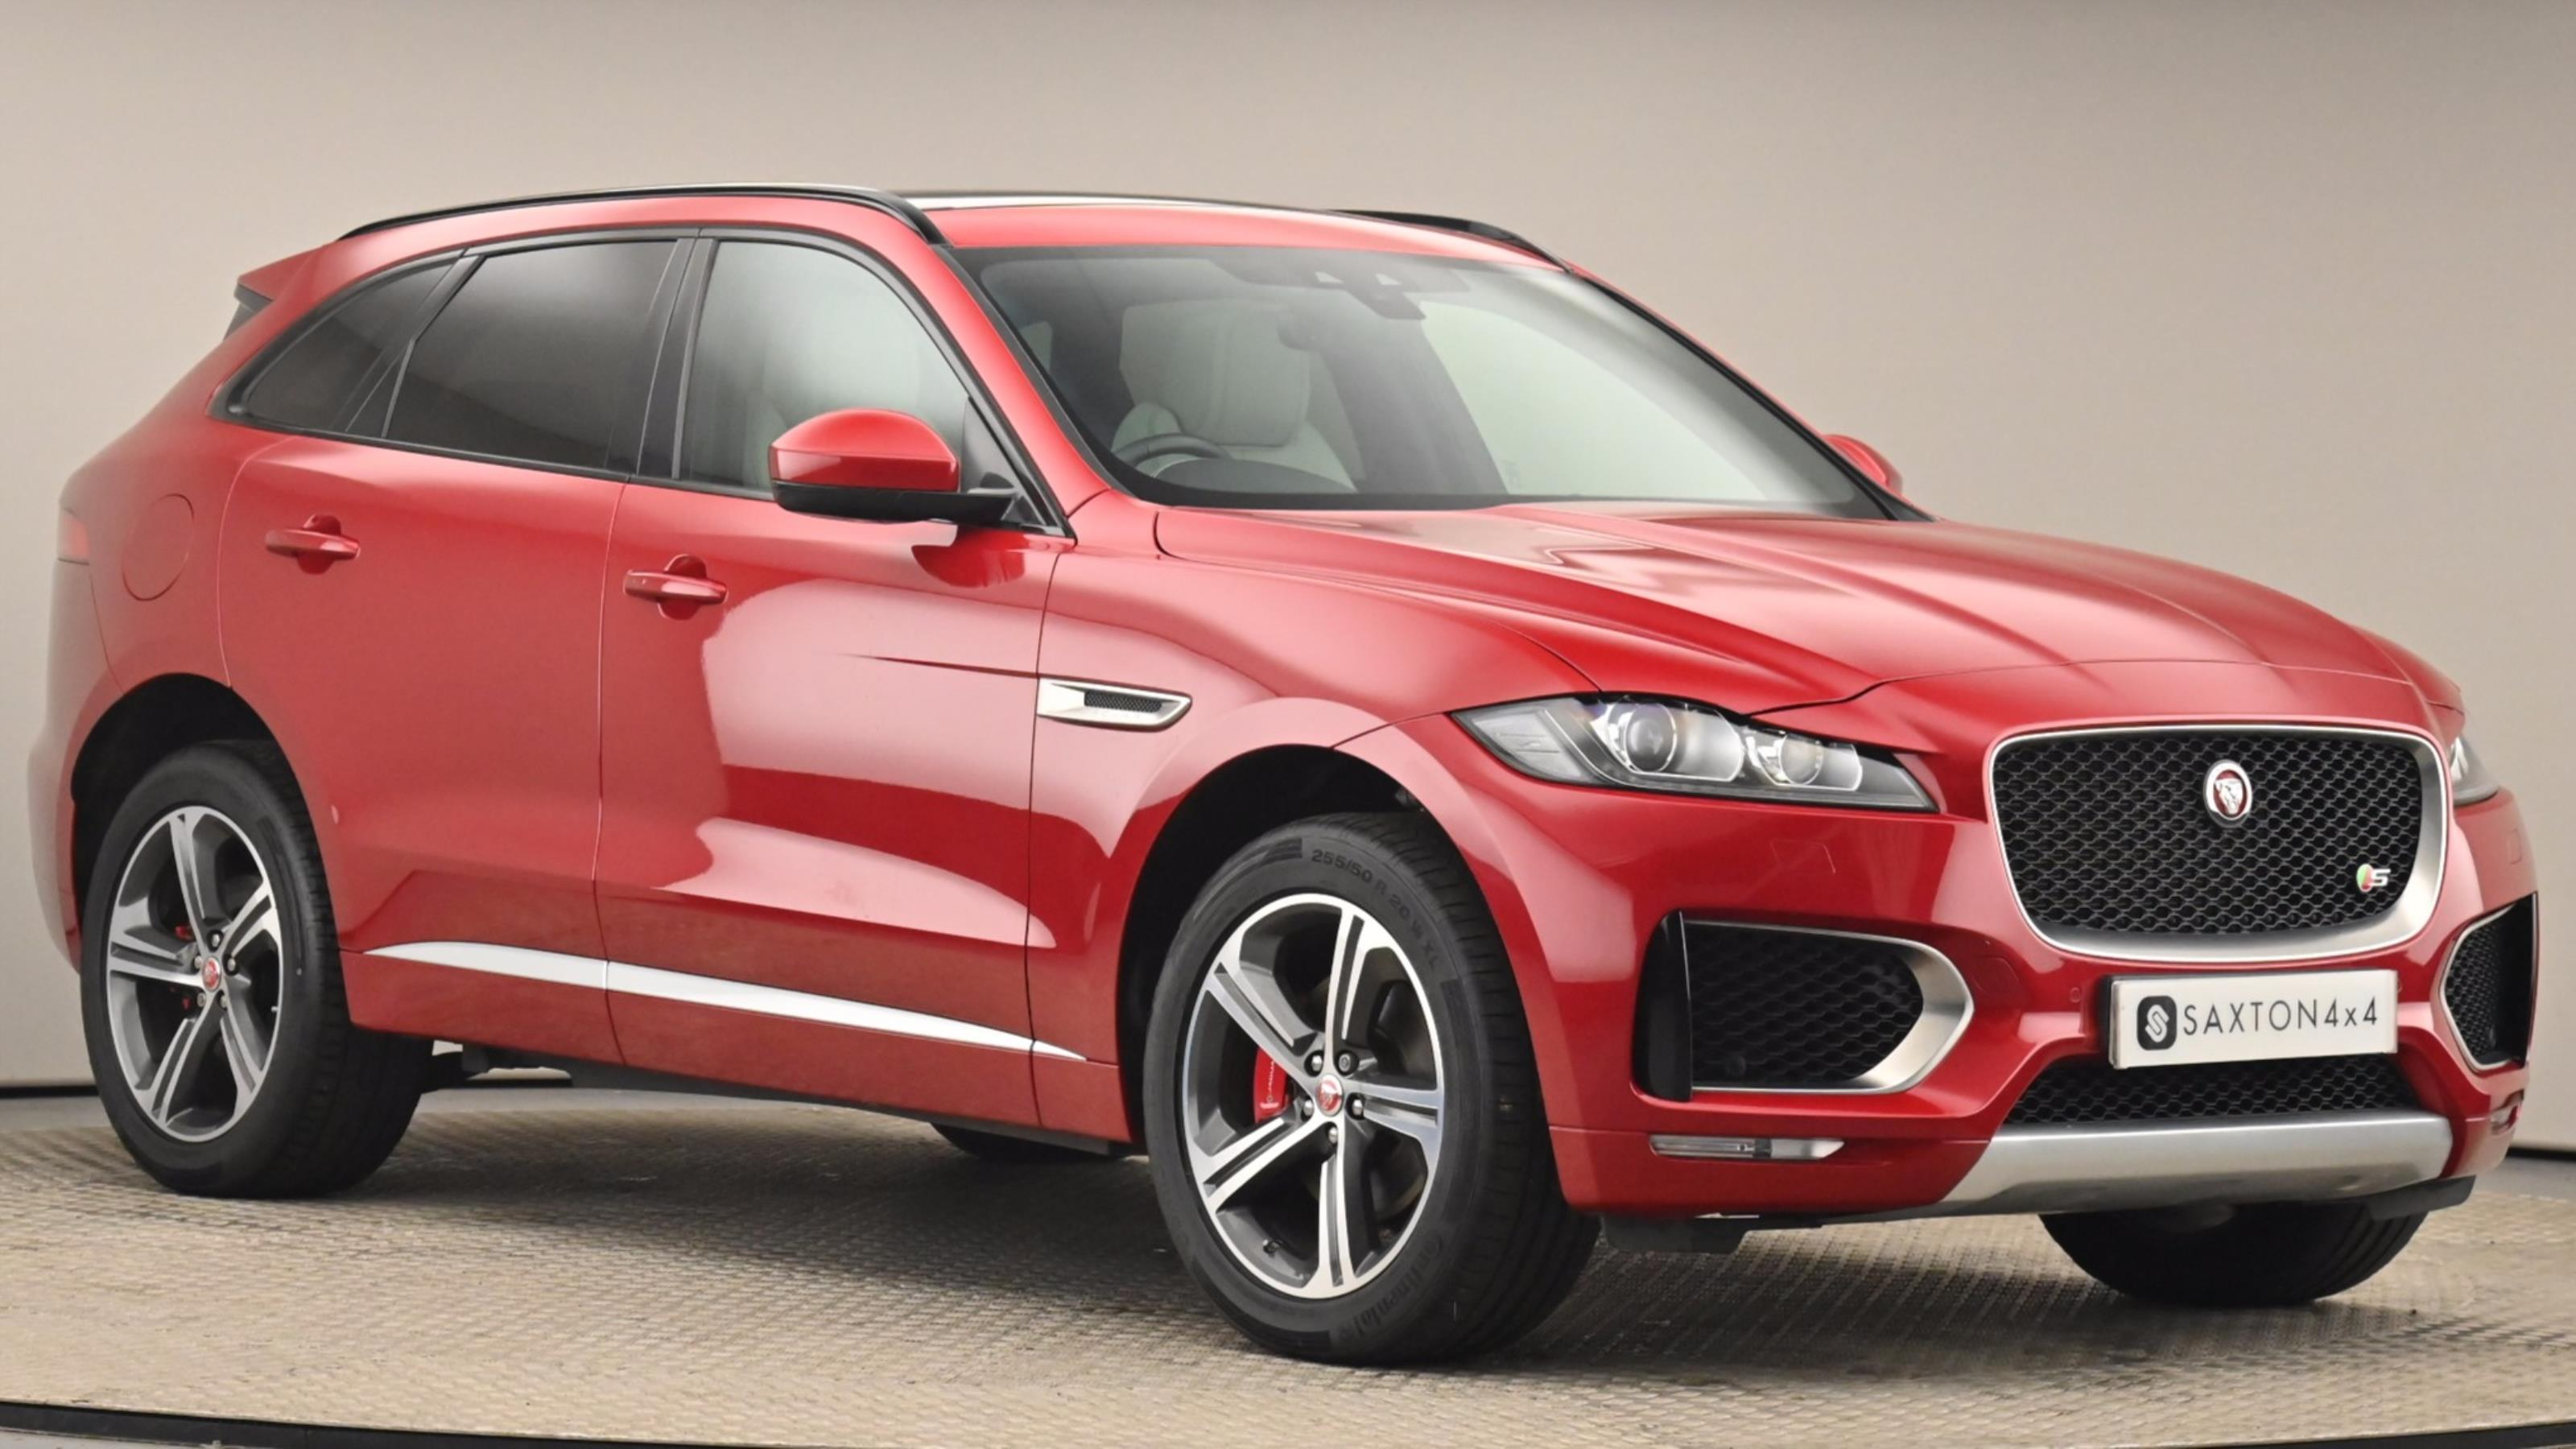 Used 2018 Jaguar F-PACE 3.0d V6 S 5dr Auto AWD RED at Saxton4x4